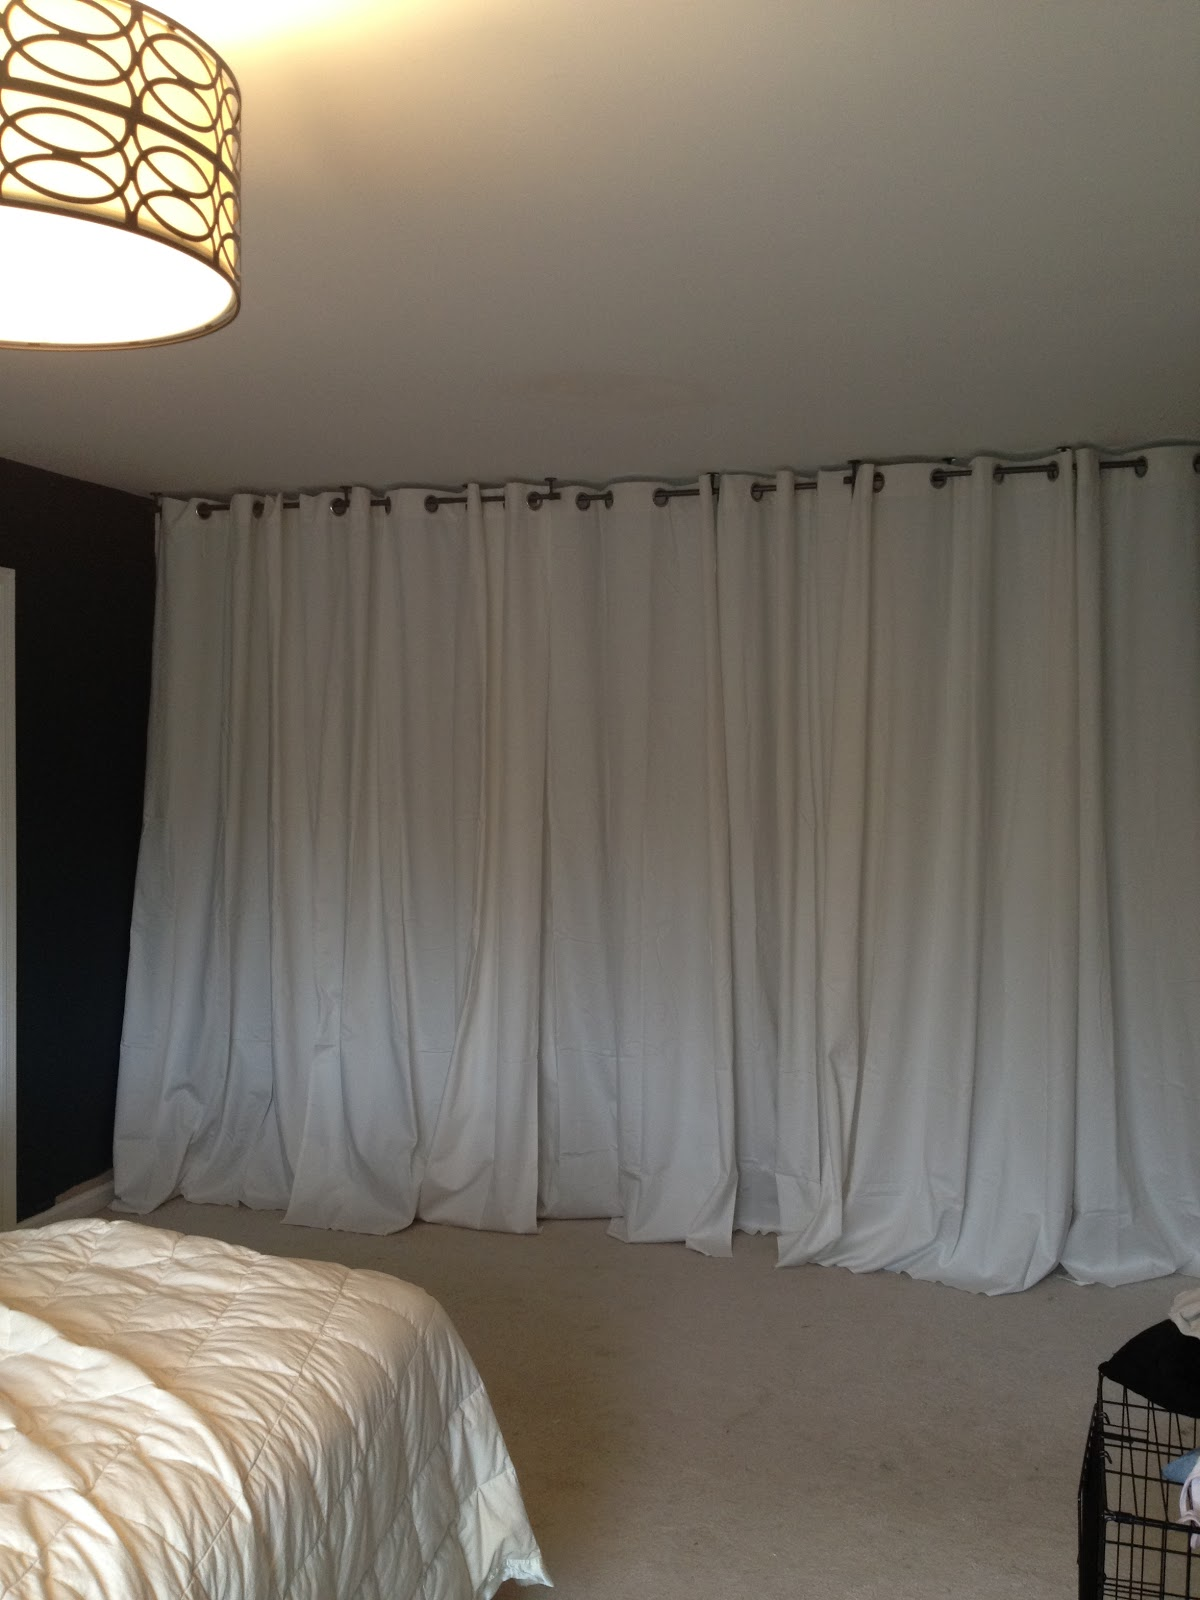 Diy Curtain Room Divider